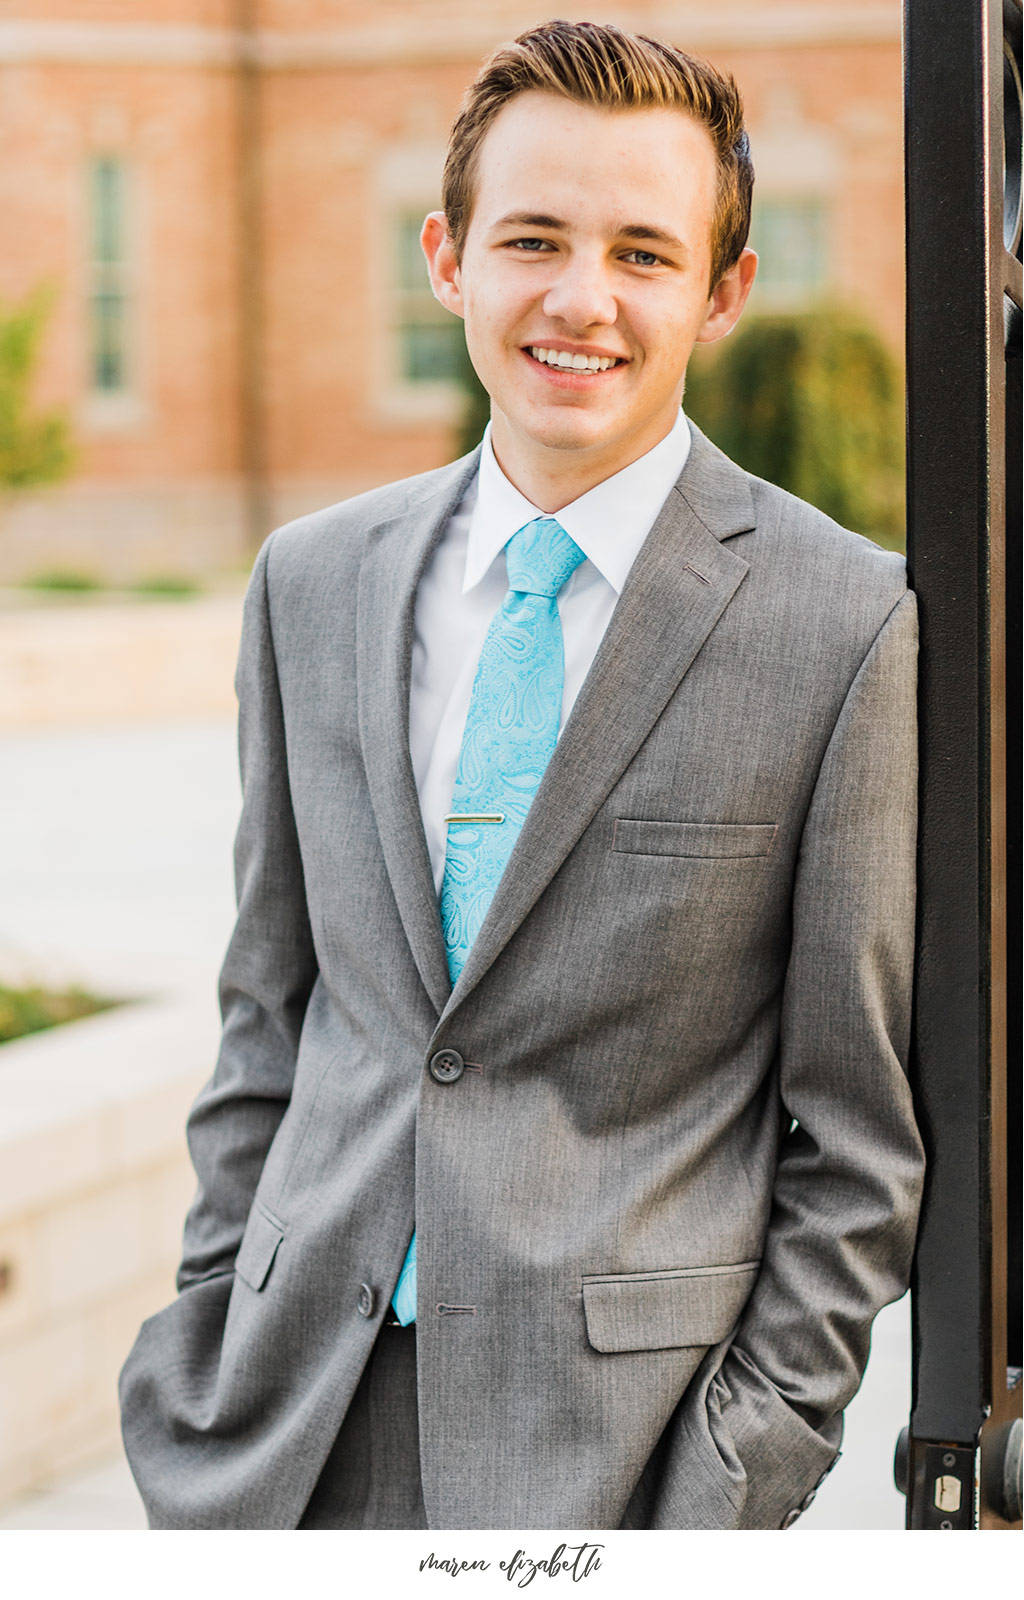 Elder missionary pictures at the Provo City Center Temple in Provo, UT. Arizona Photographer   Maren Elizabeth Photography